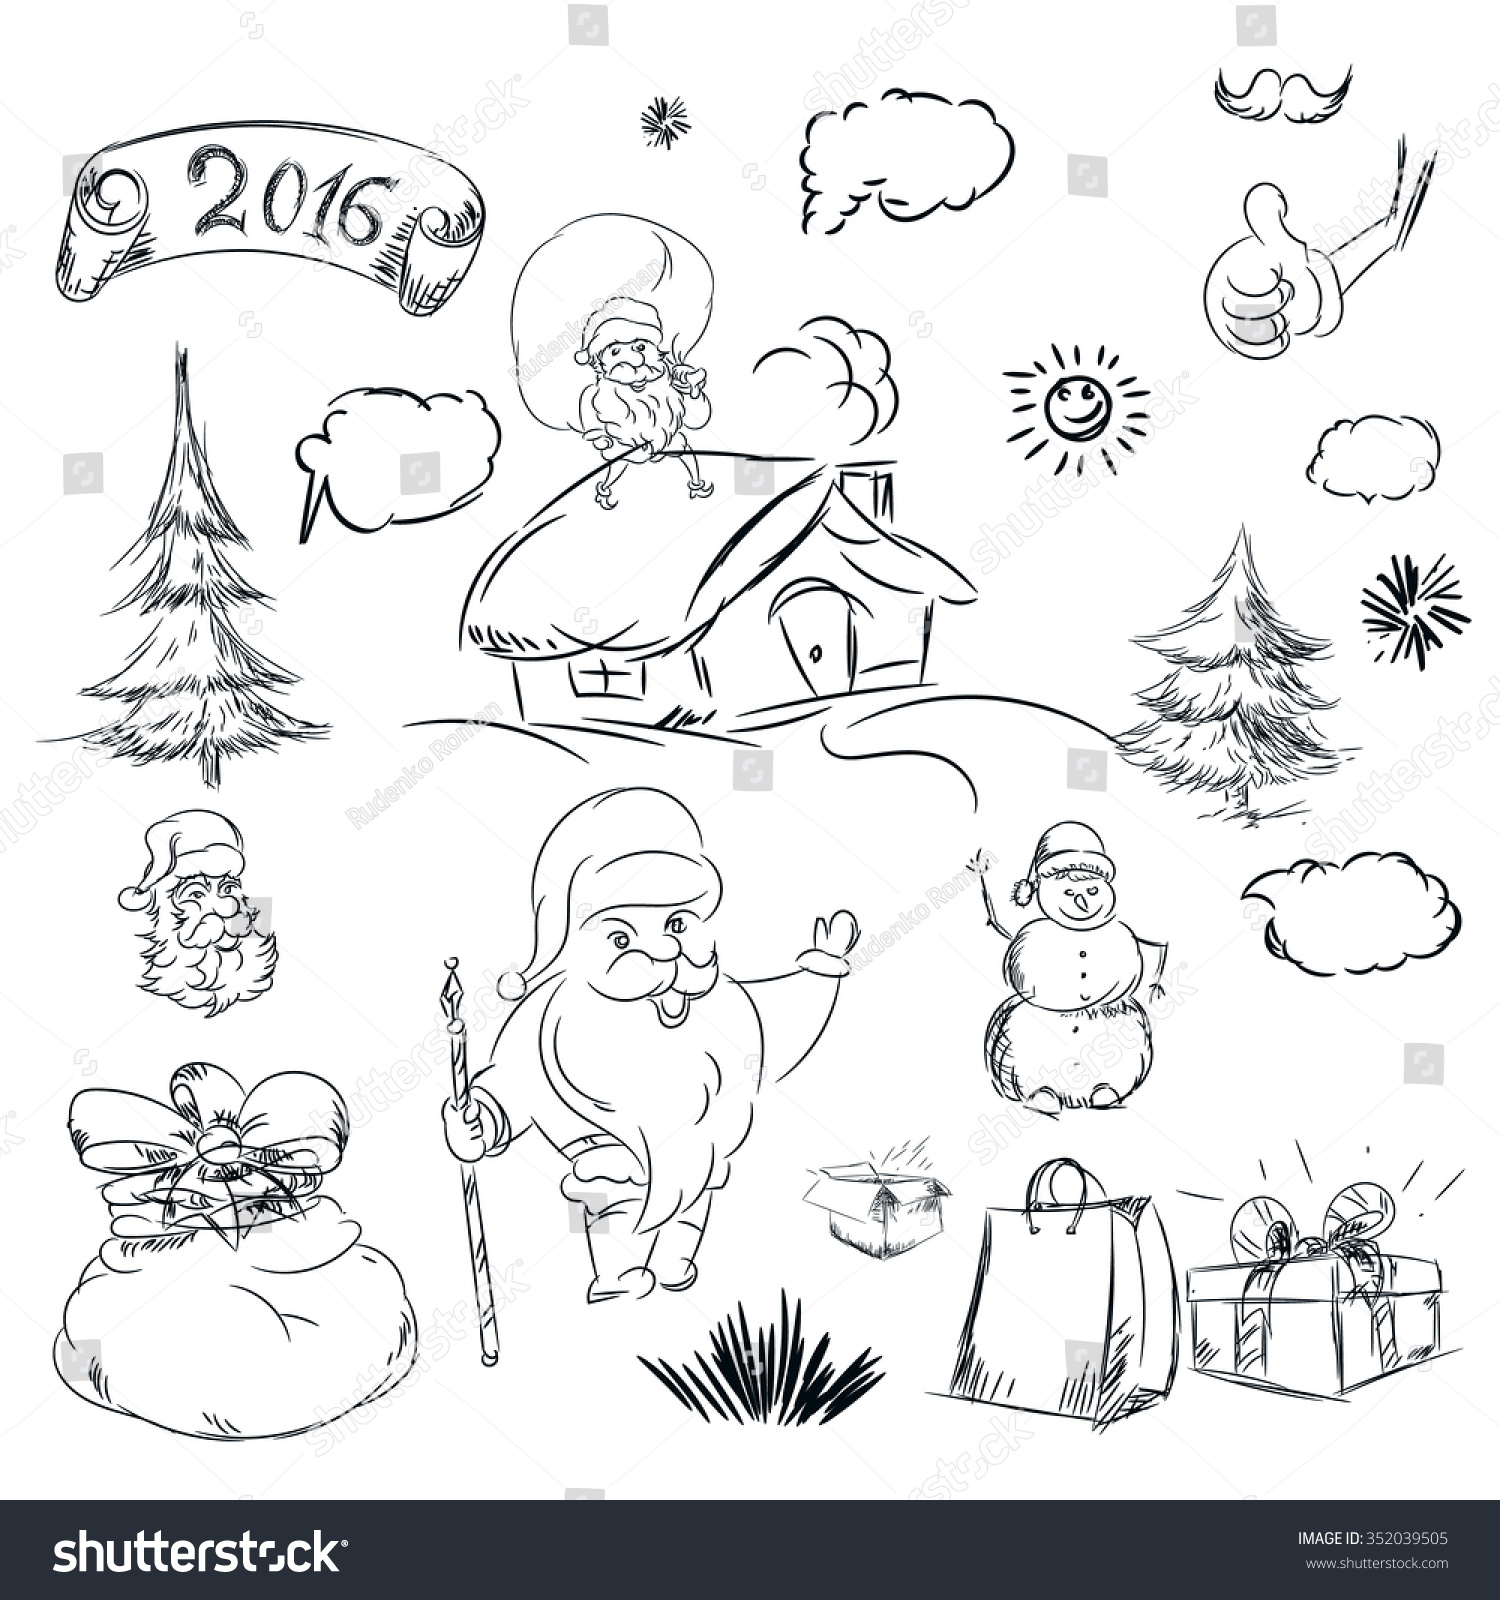 Uncategorized Christmas Pencil Drawings pencil sketch christmas tree house stock illustration for with and hand drawn scribble shapes santa